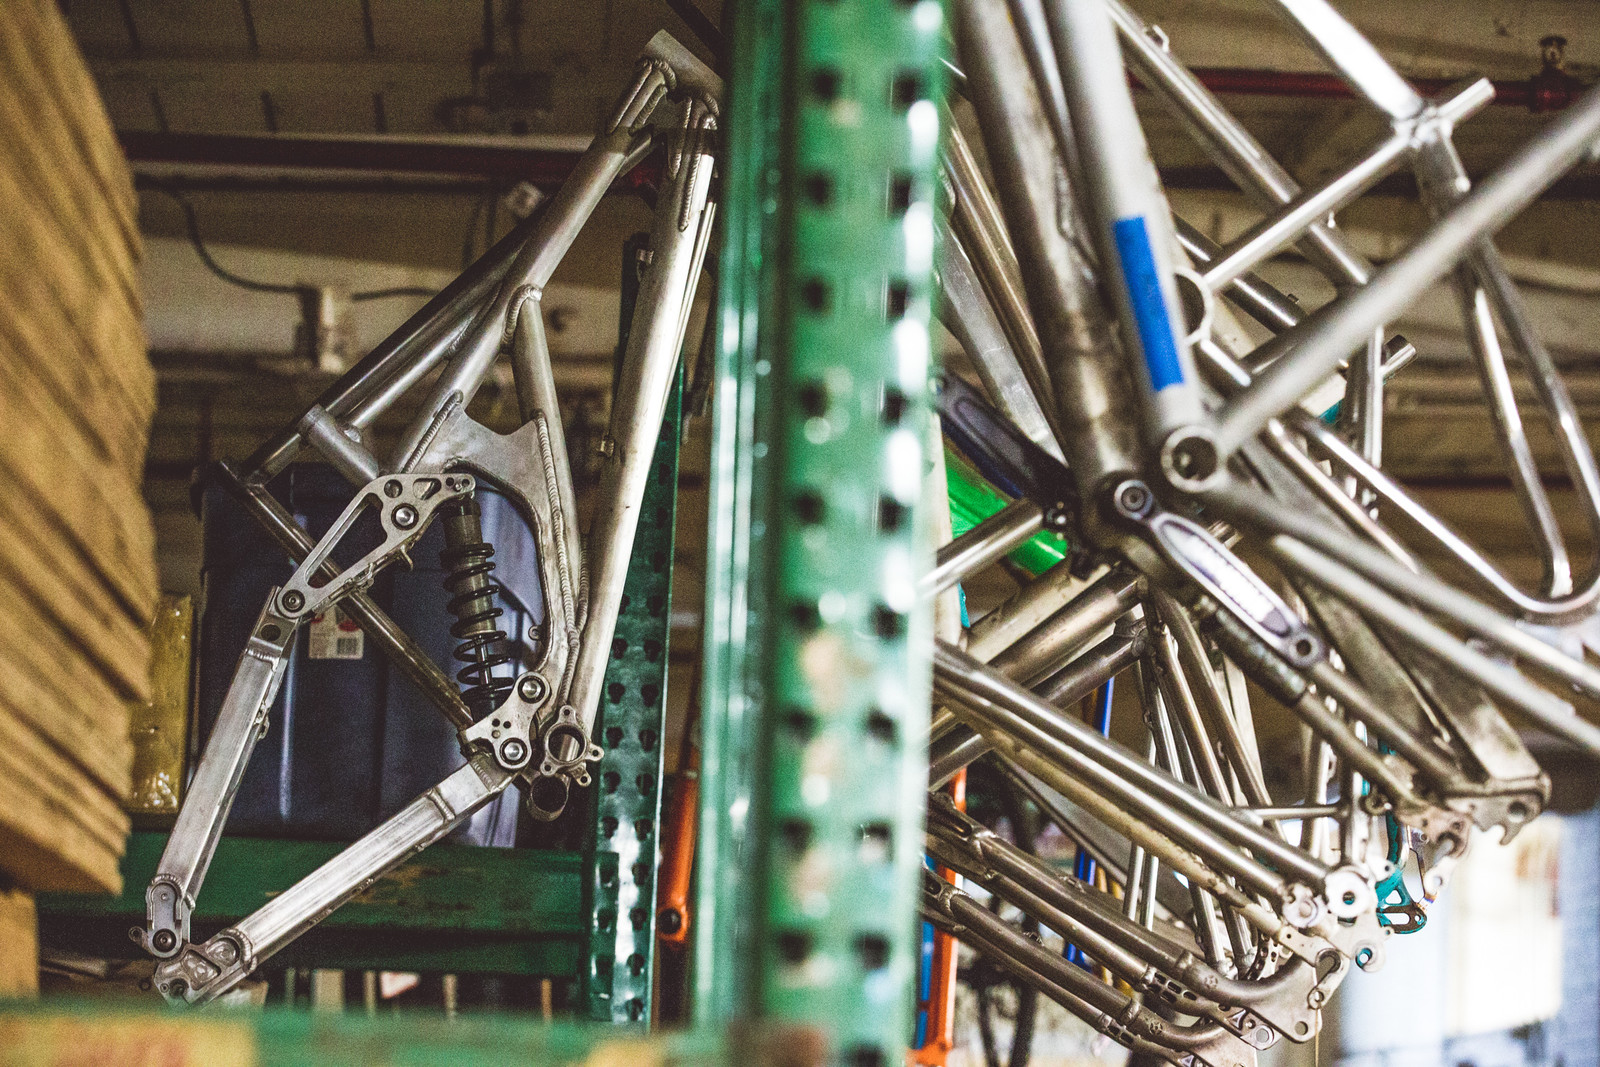 High up by the ceiling, covered in machine shop patina, there hangs an innocuous frame... one which has unbound potential, though it sadly never saw production - yet?!